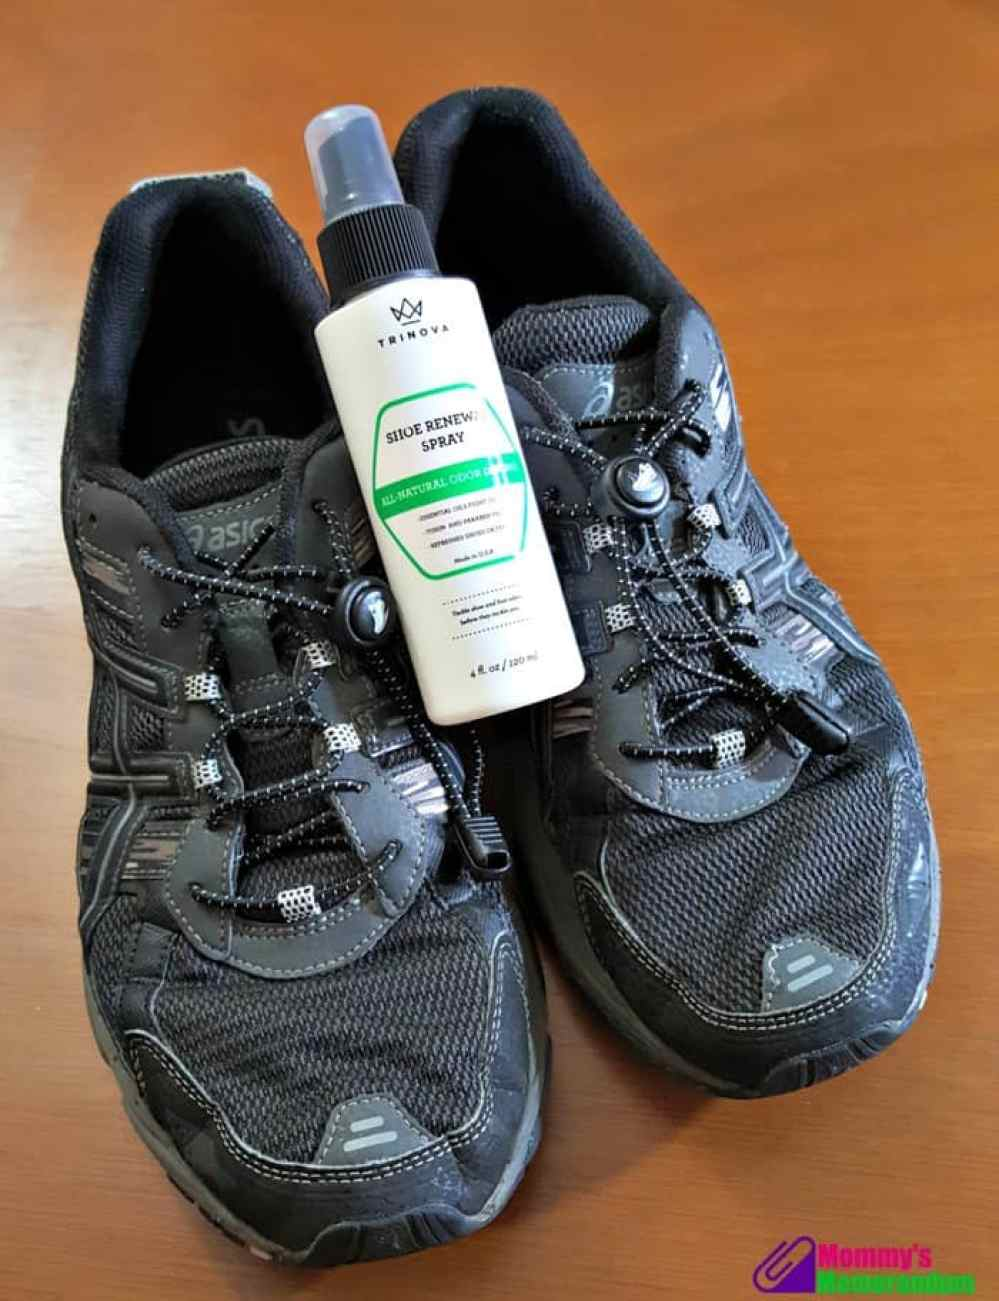 trinova shoe renewal spray with shoes